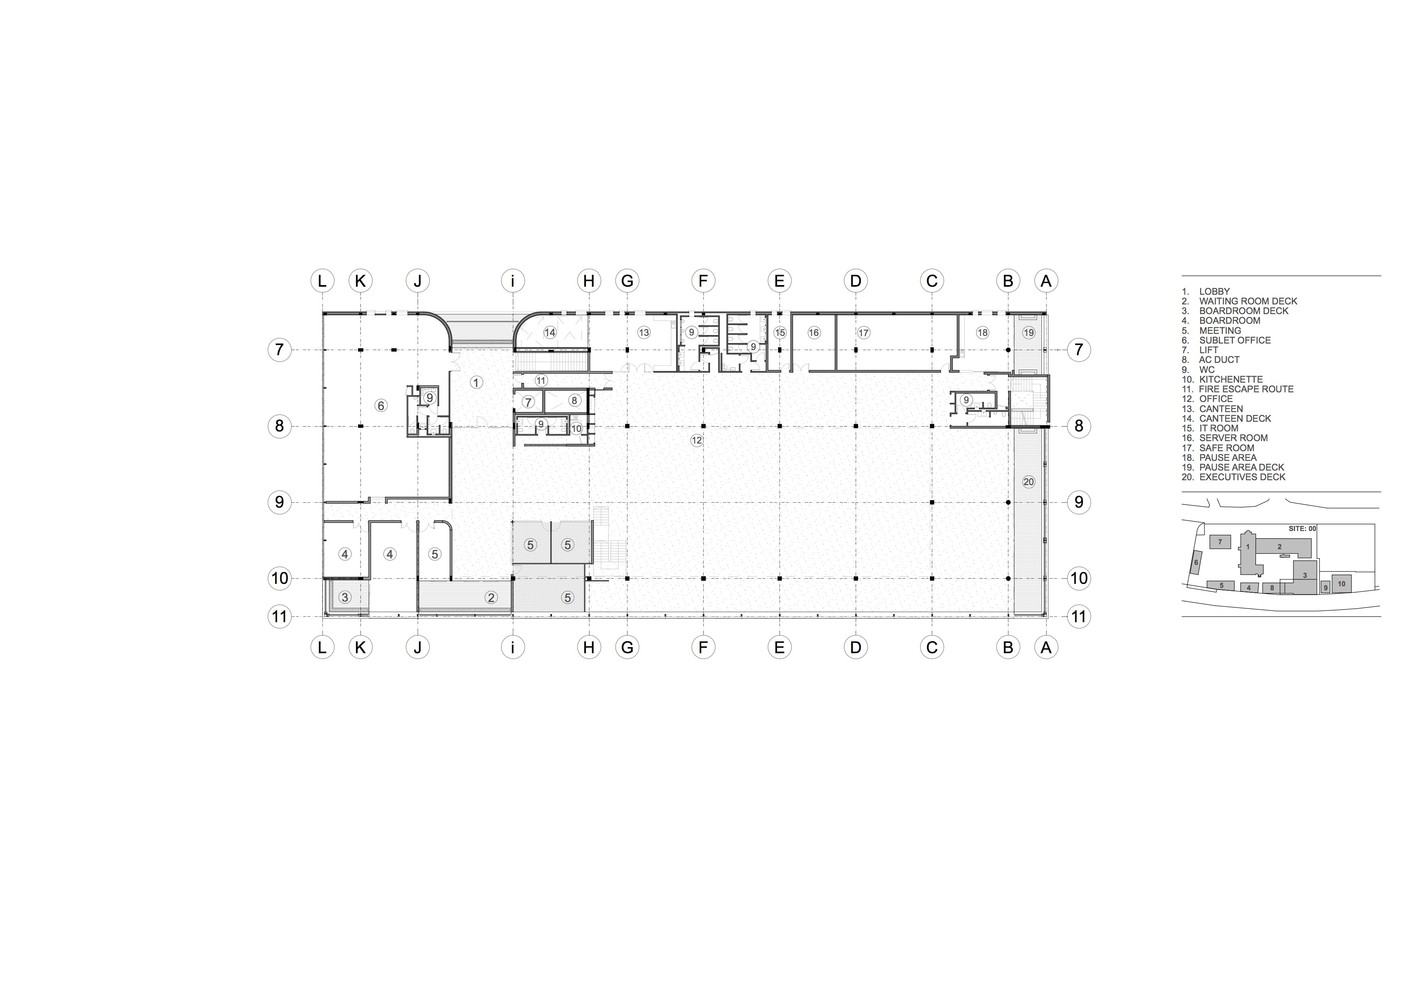 hight resolution of lion match office park 5th floor plan